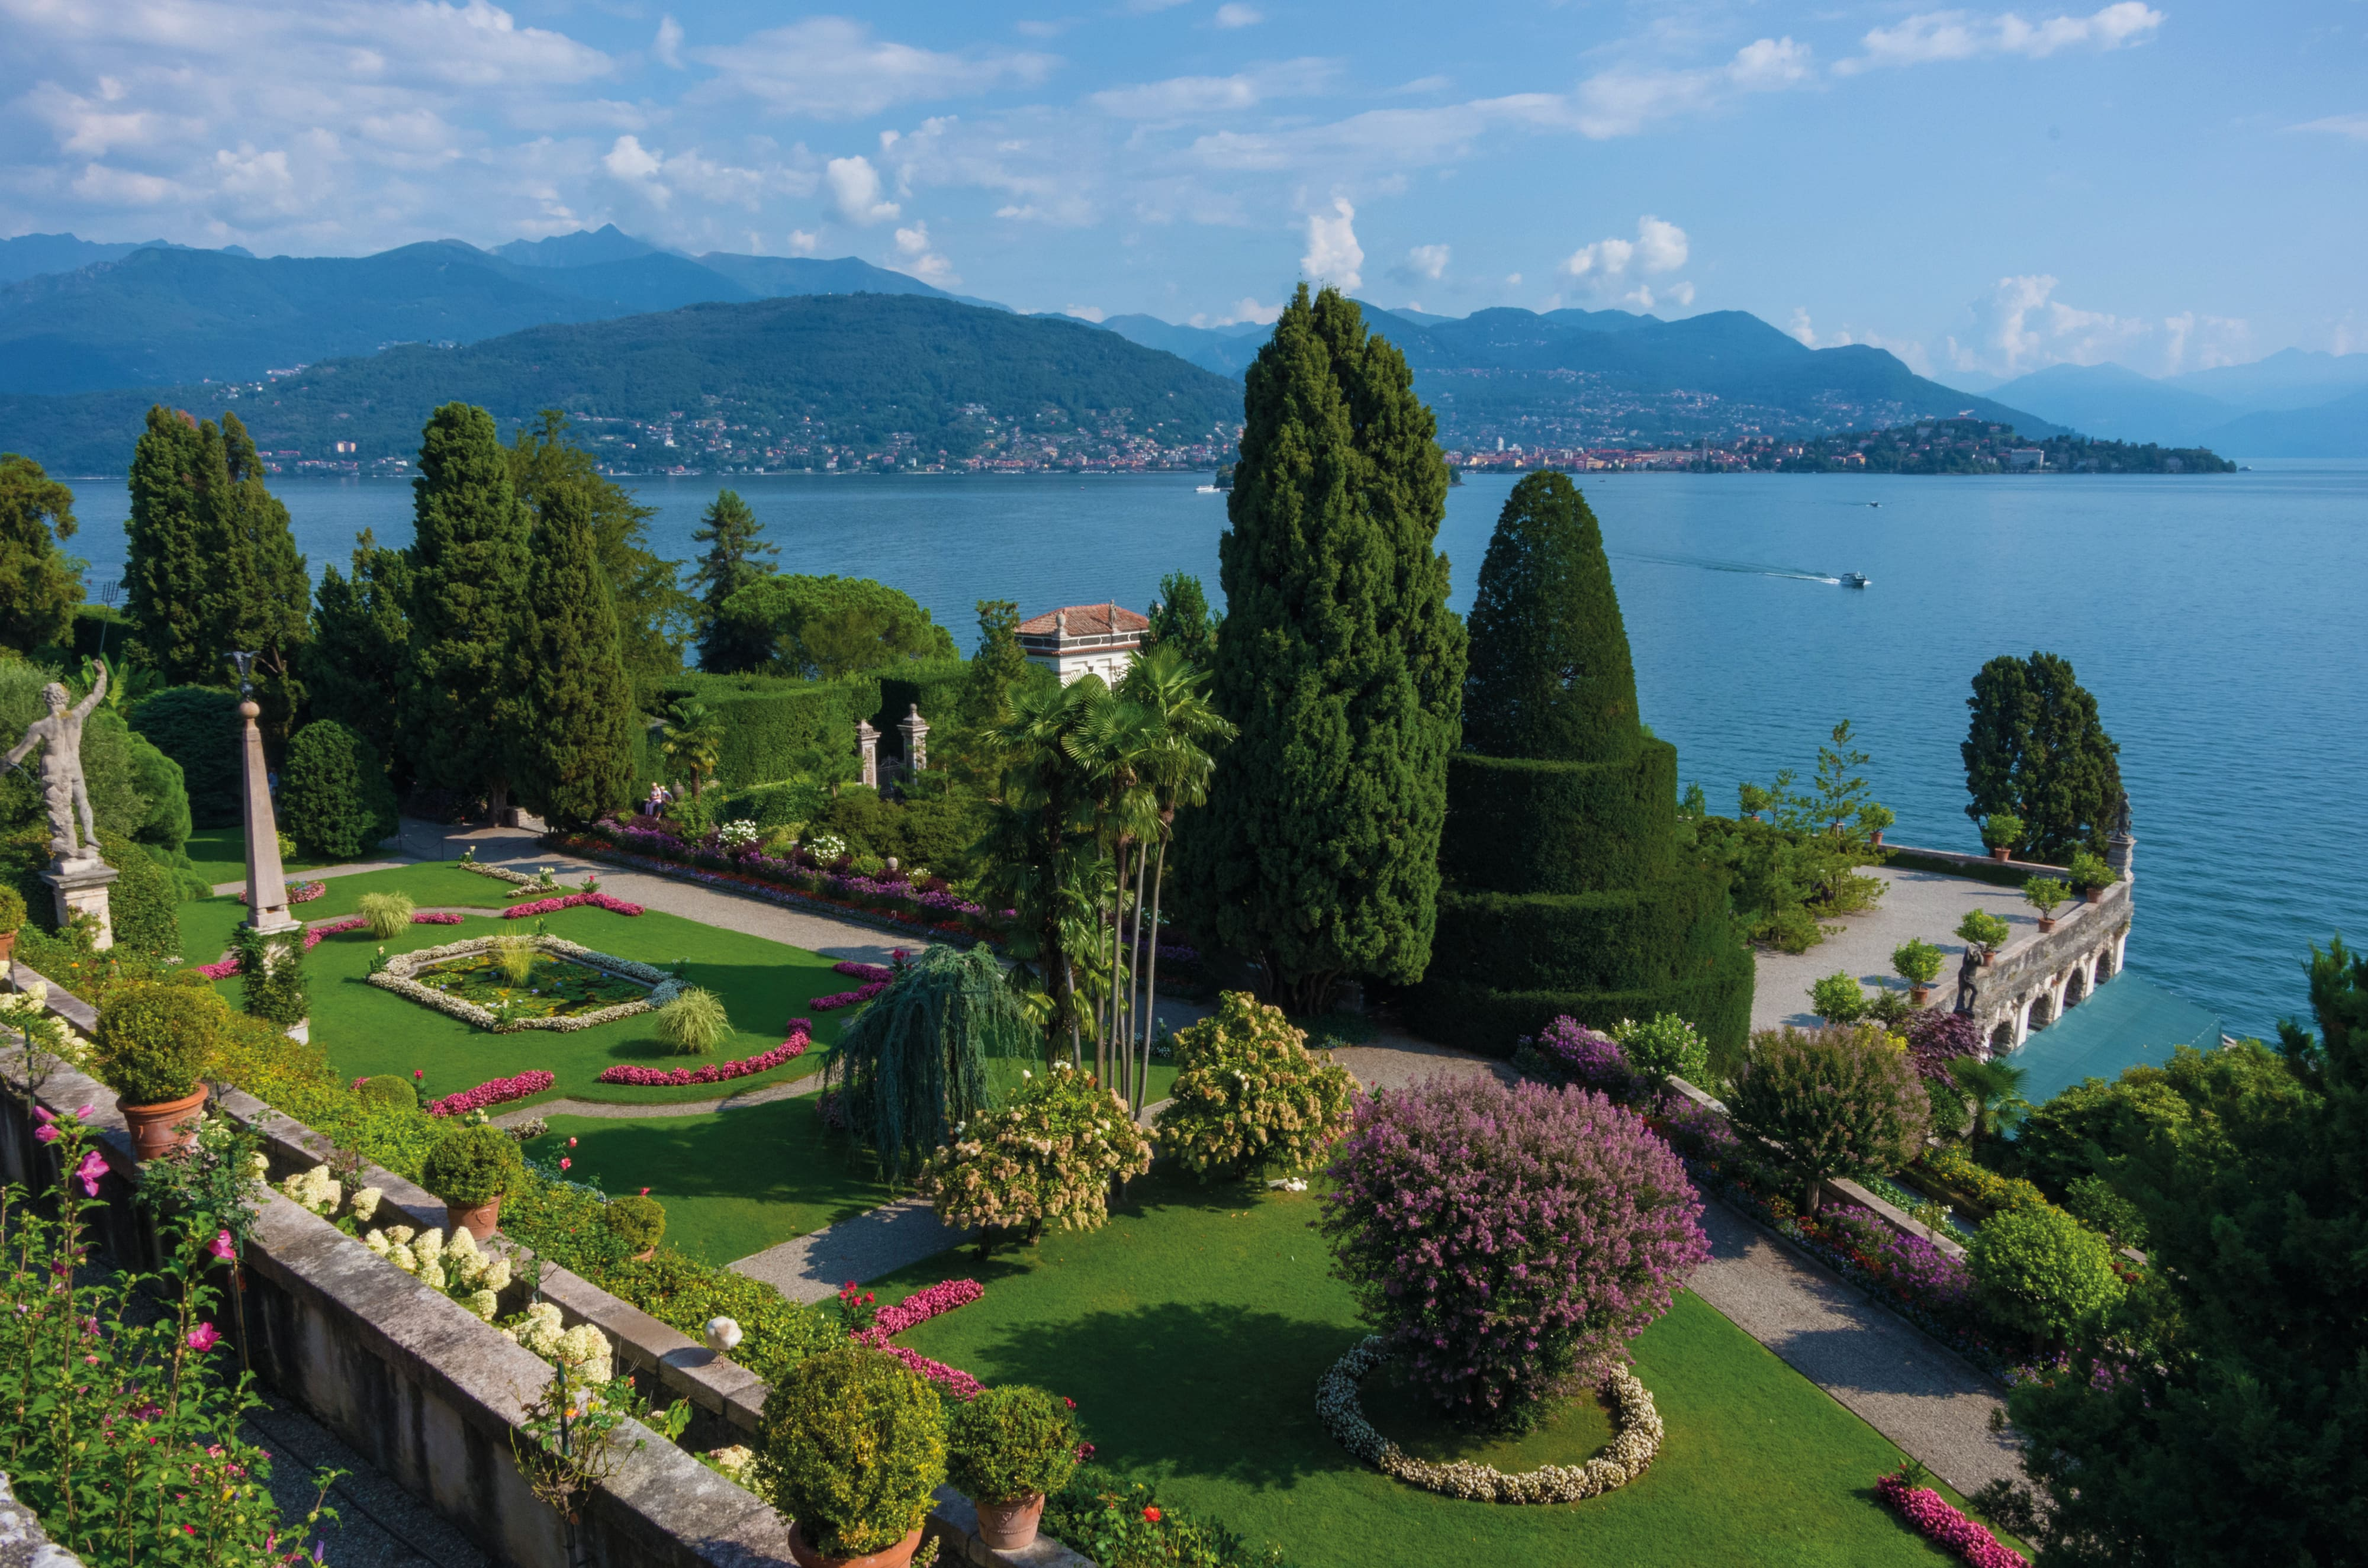 Gardens of Isola Bella and views of Lake Maggiore